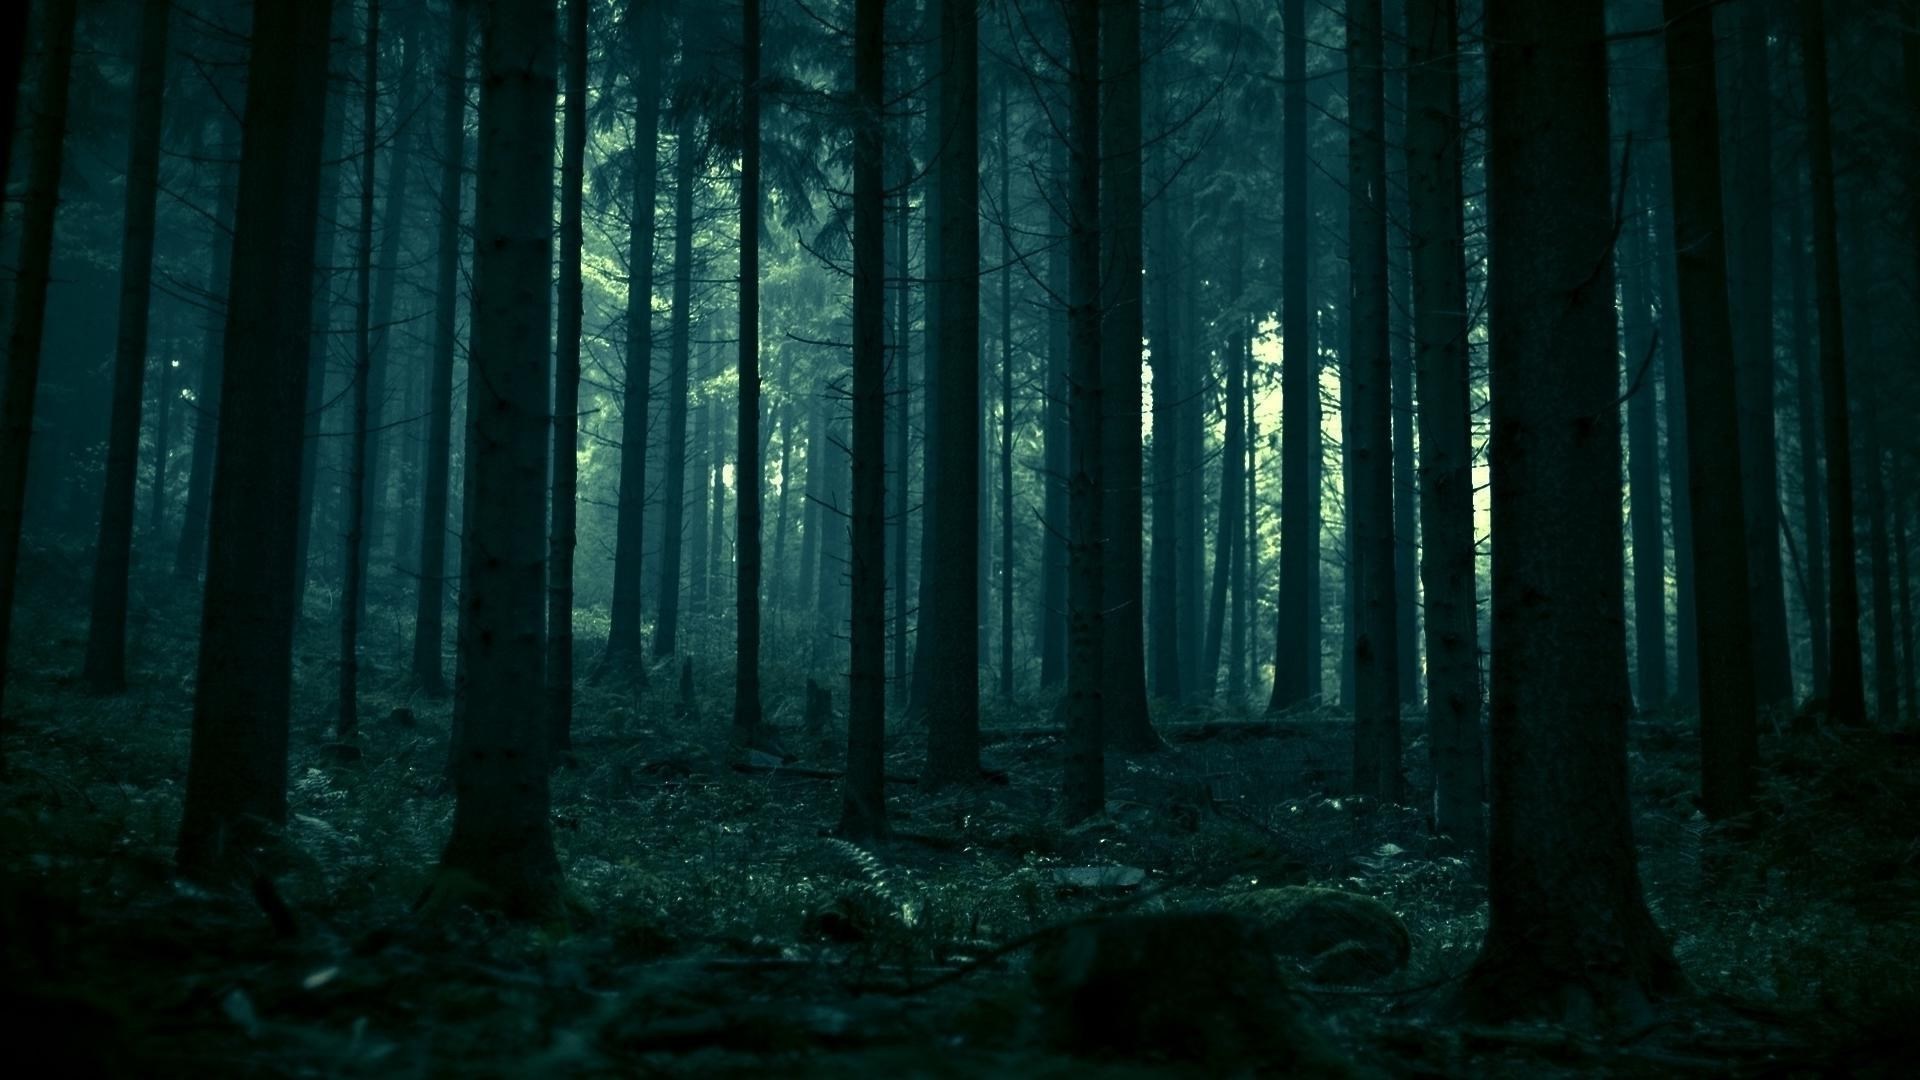 1920x1080 1920 x 1080 px free screensaver wallpapers for dark forest by Camden Ross  for - TWD